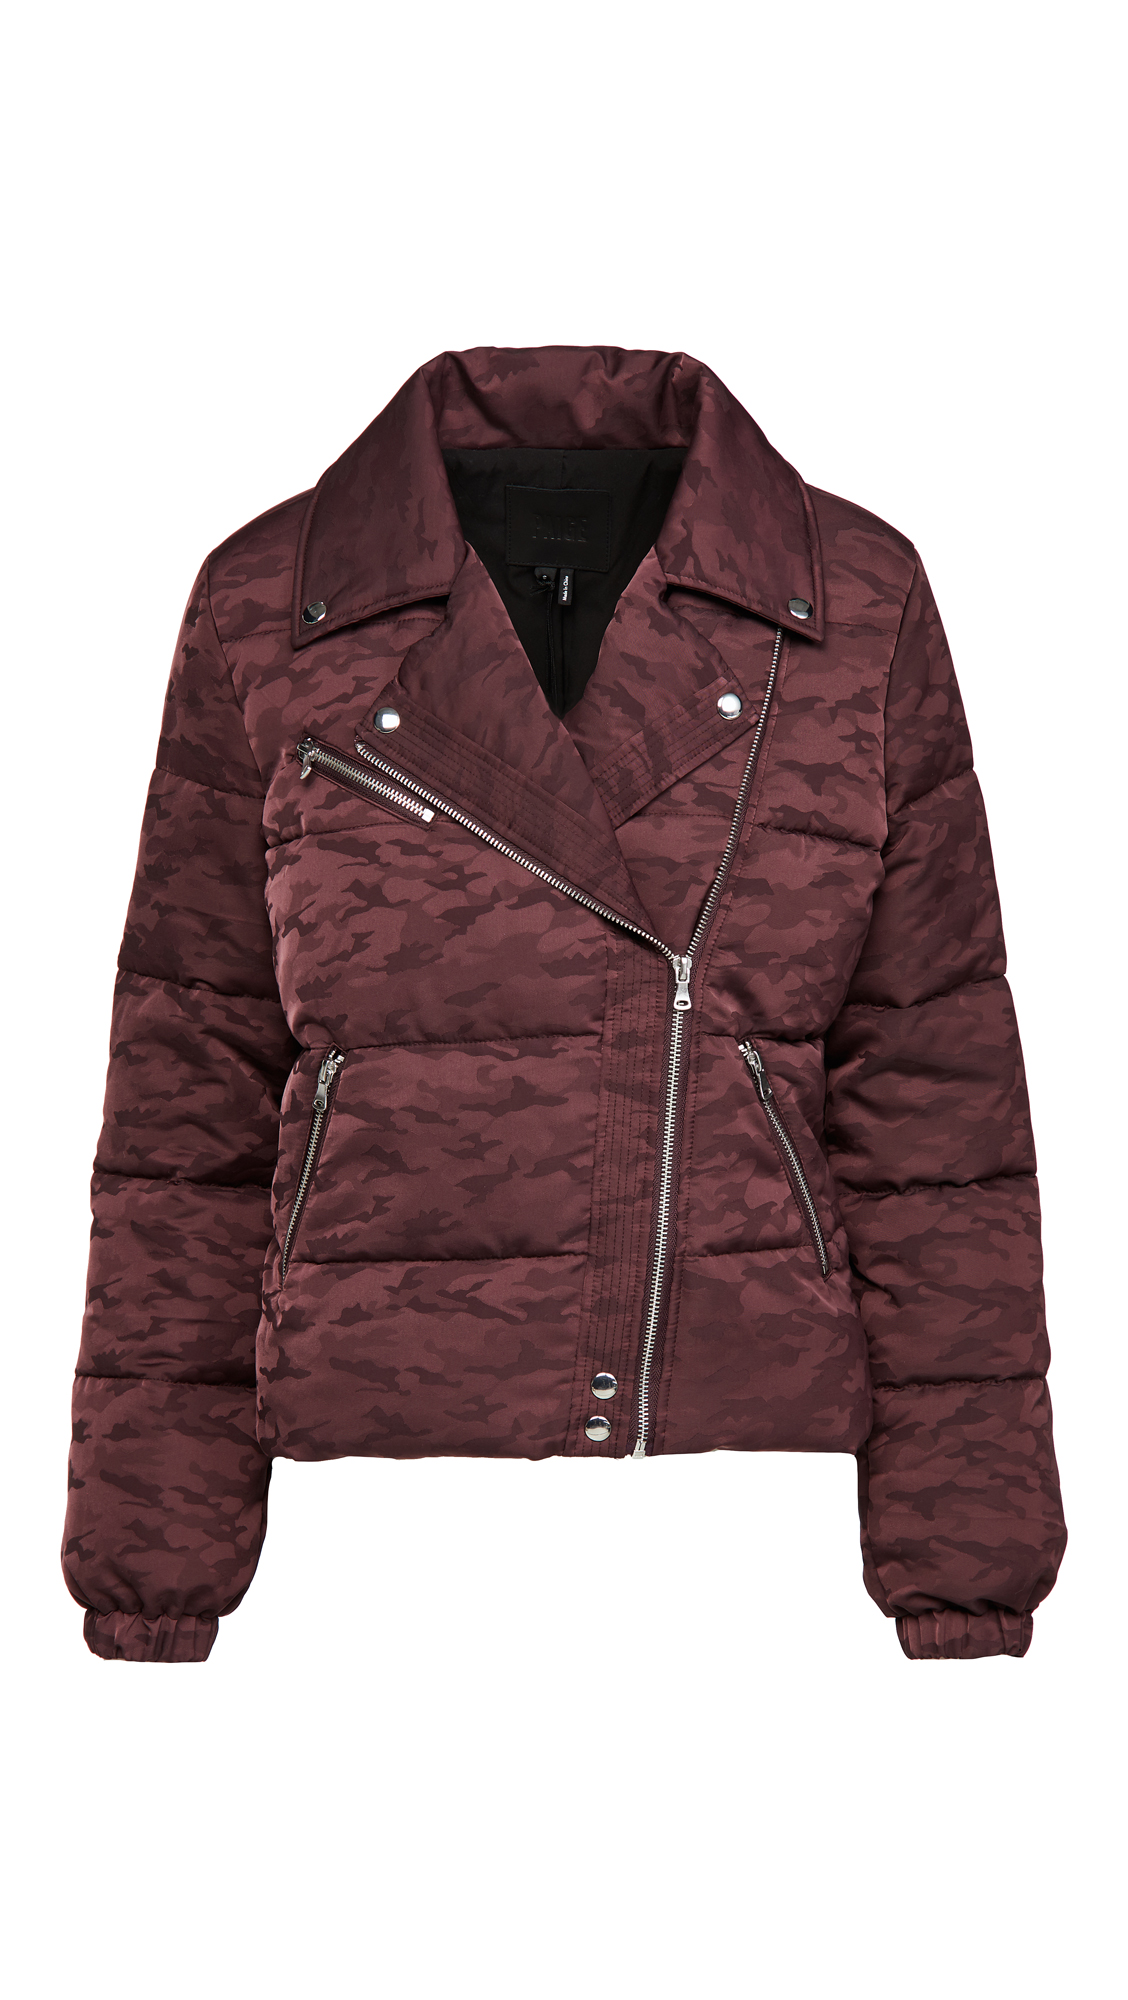 Paige Downs SEQUOIA PUFFER JACKET